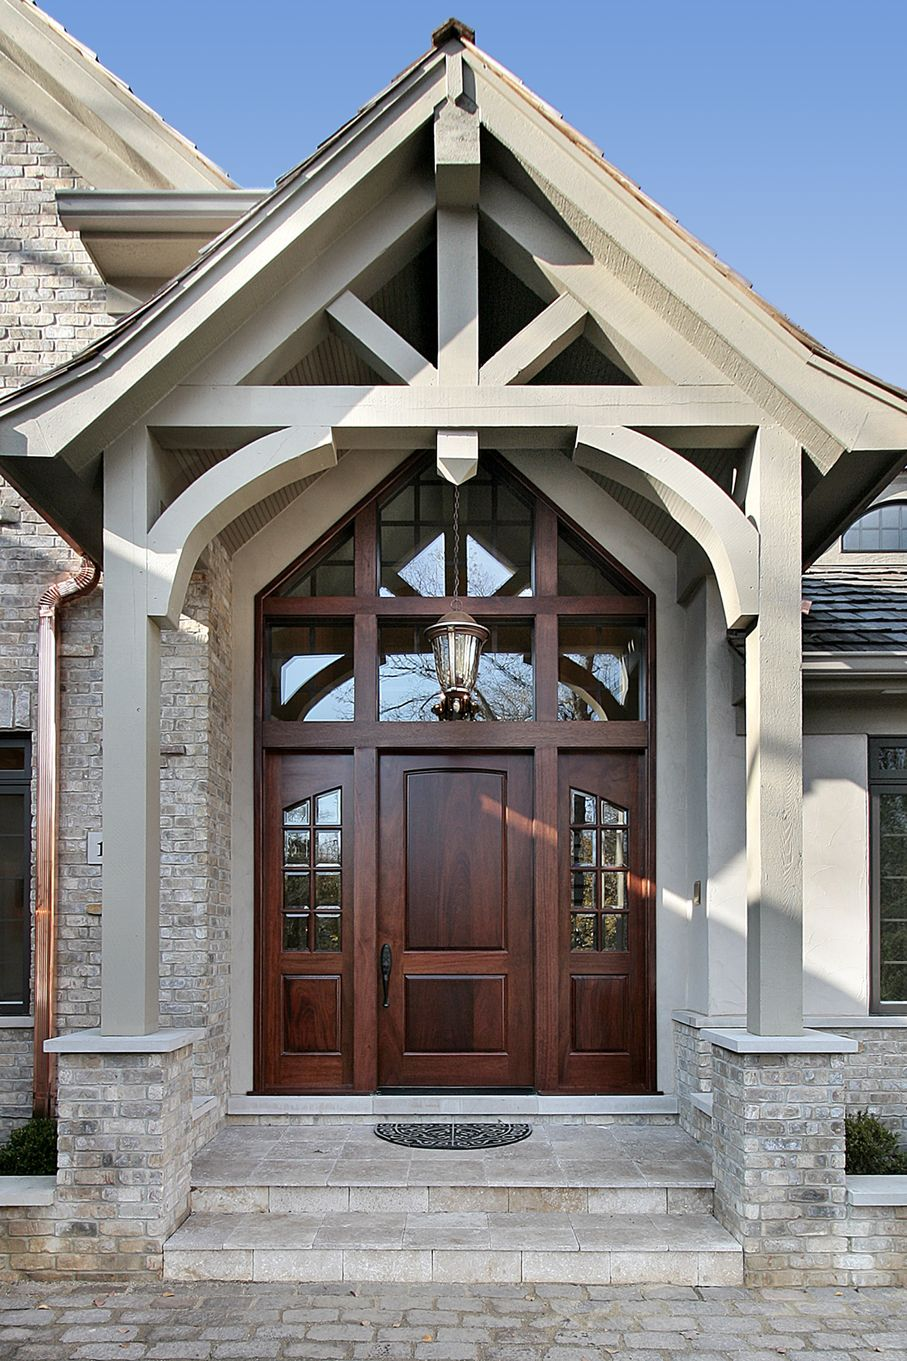 Entry to upscale home